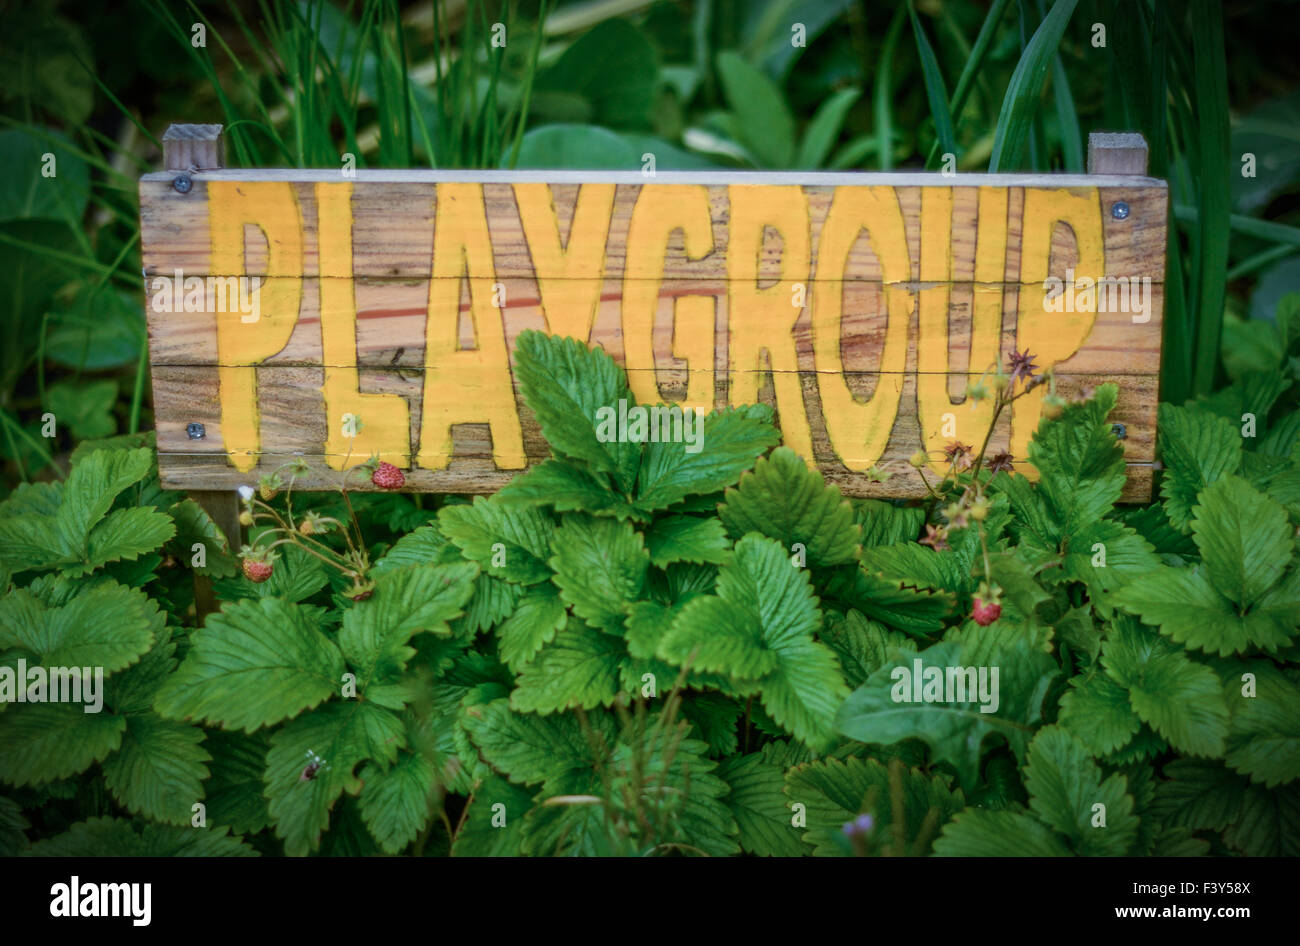 Rustic Sign For School Playgroup - Stock Image